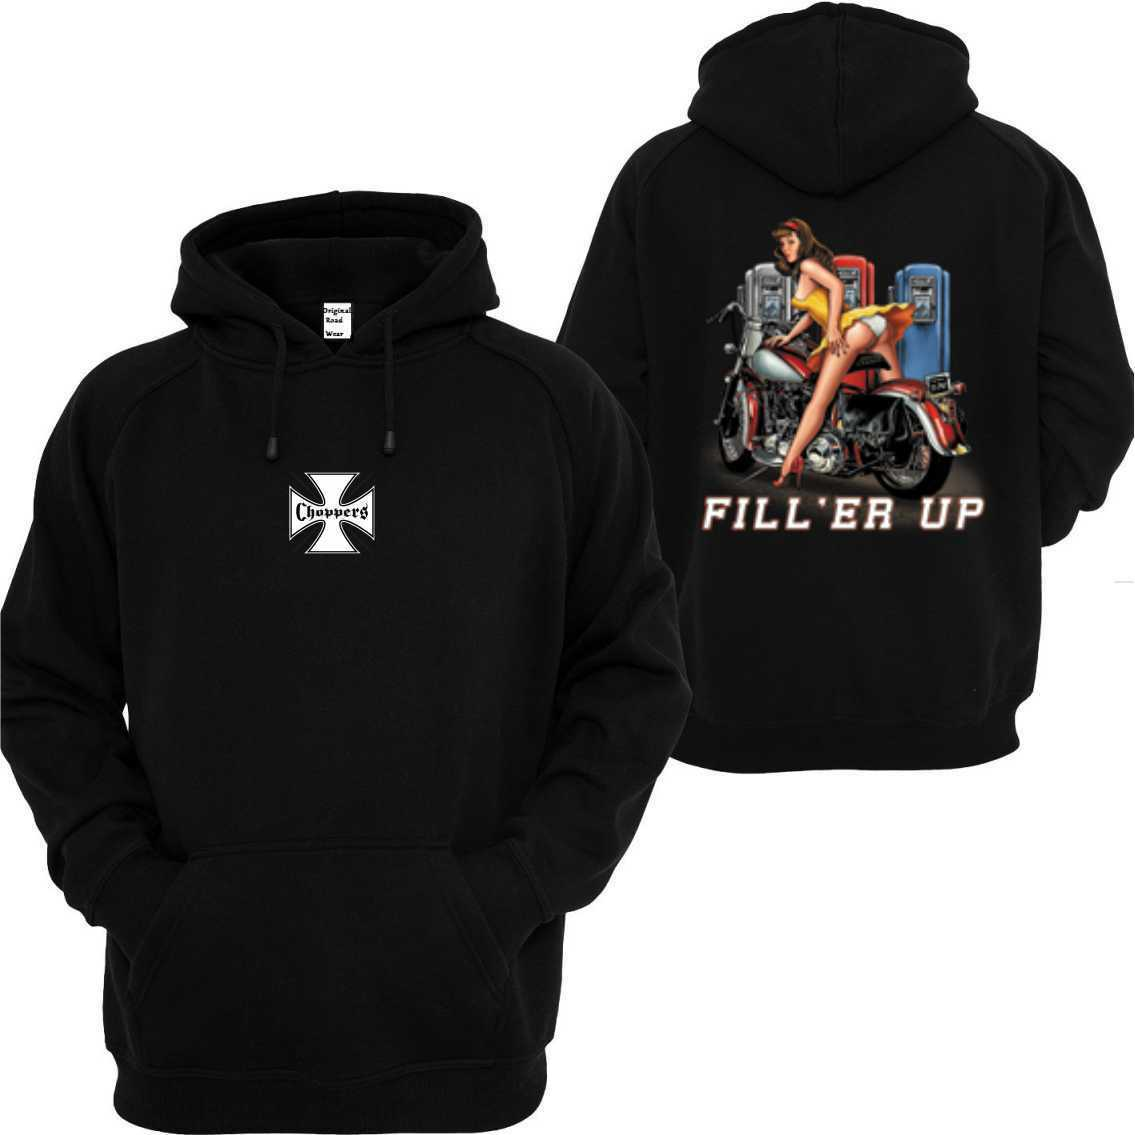 Hoody Vintage HD Biker Chopper & Oldschool Motif Fill Er Up